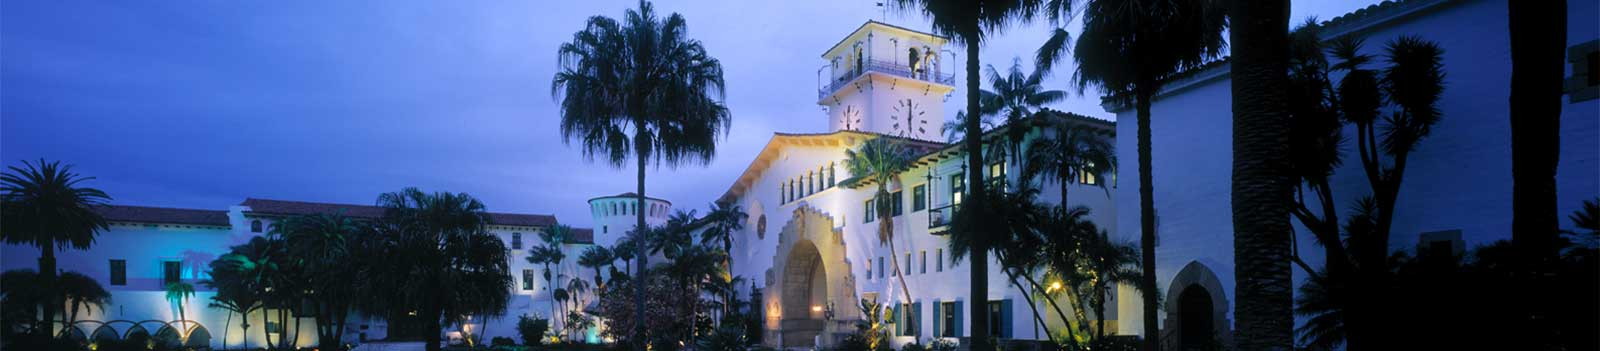 Santa Barbara Courthouse at night